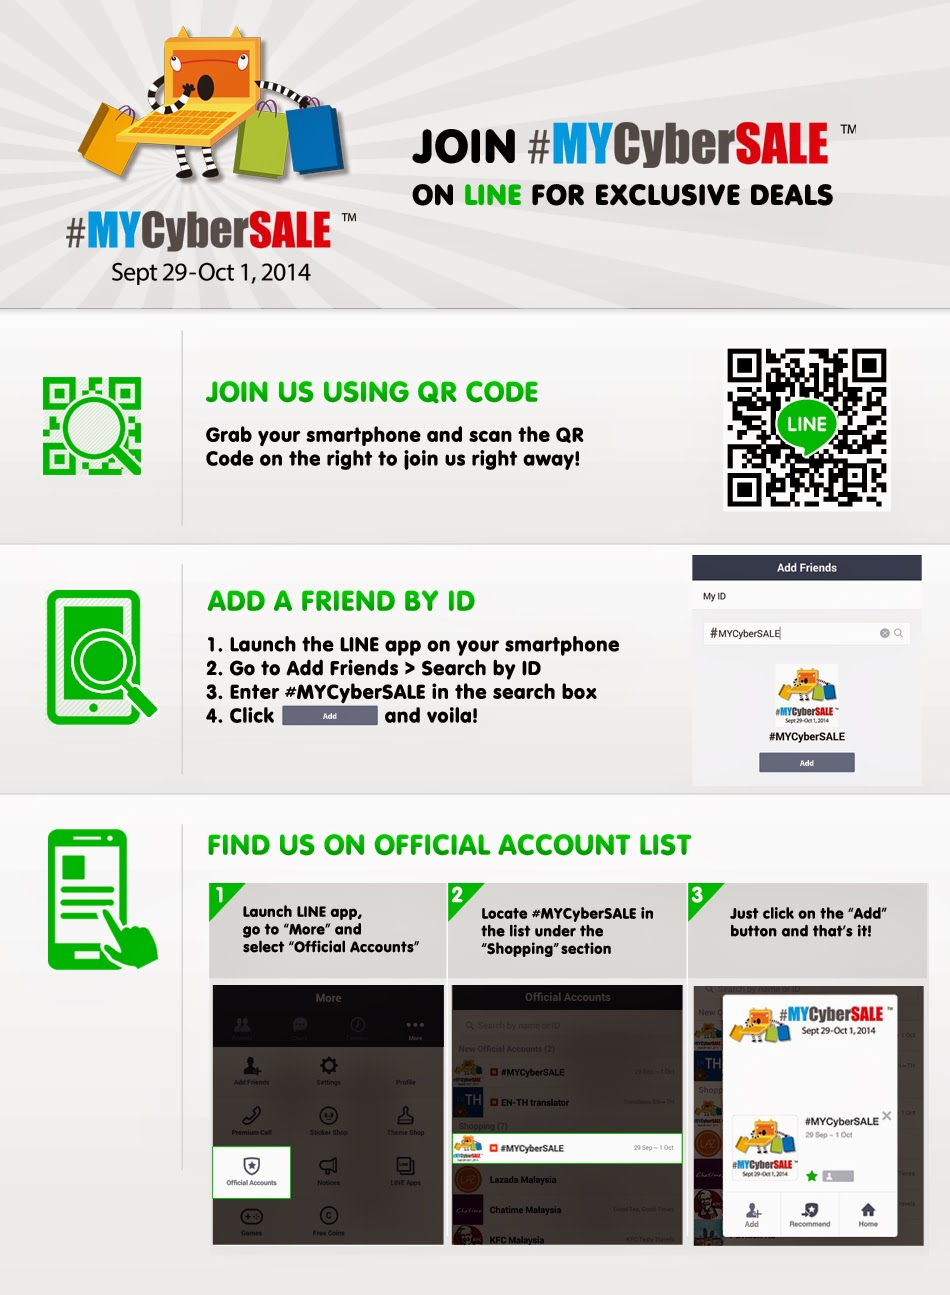 How to join #MYCyberSALE on LINE?